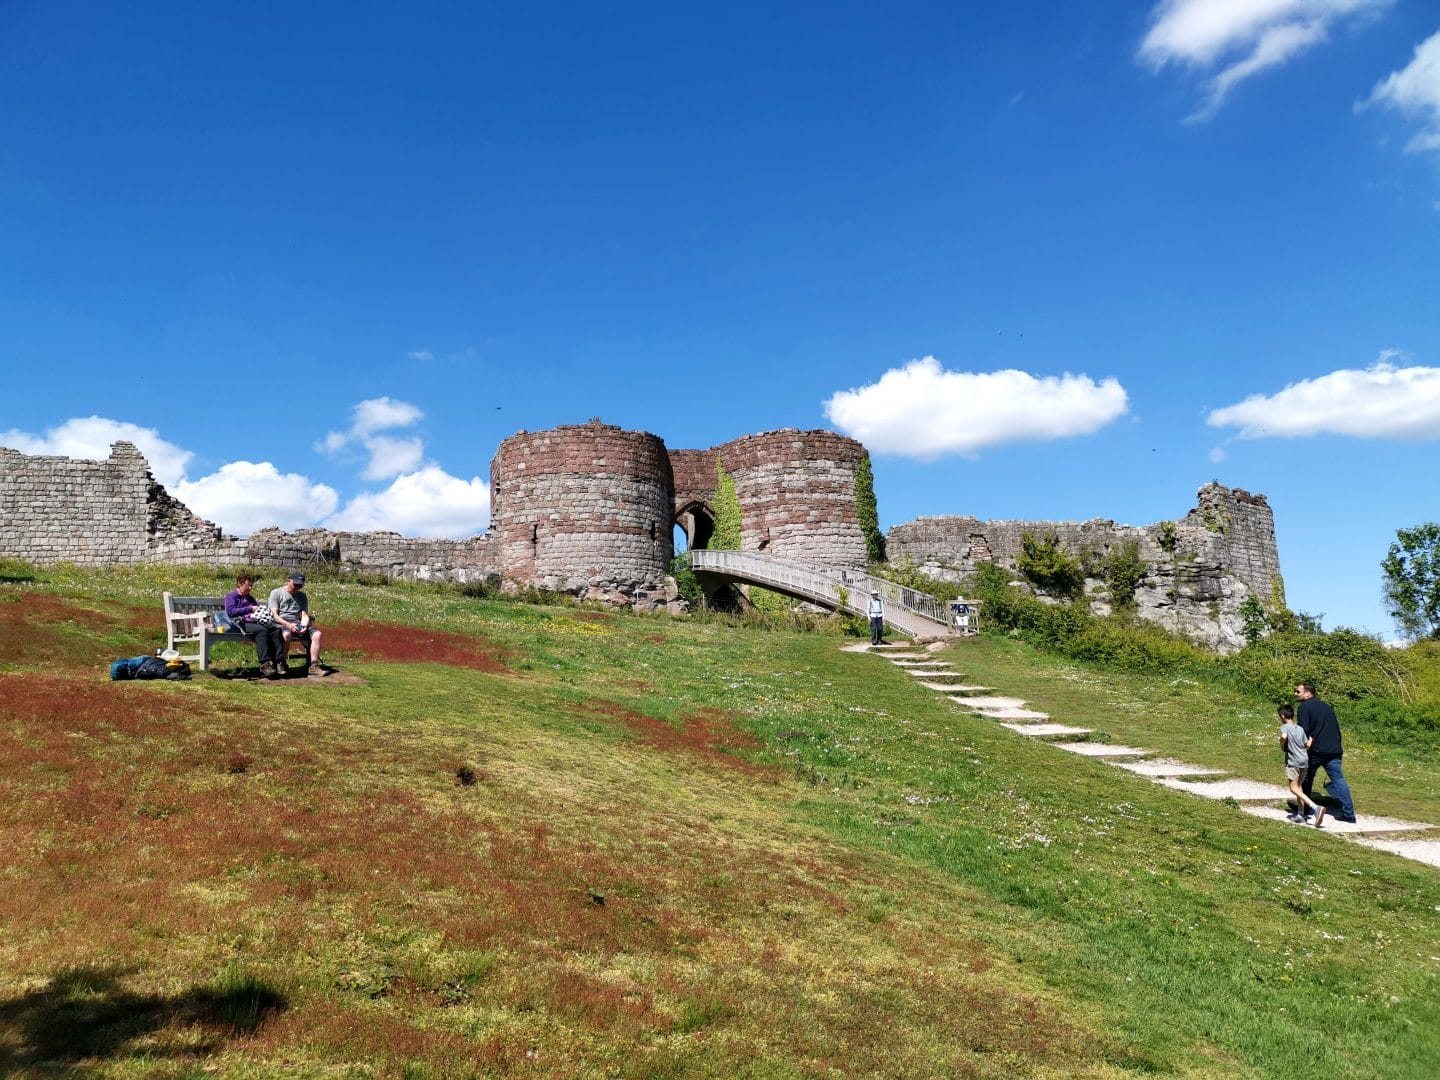 Beeston Castle & Woodland Park – Stopping By On A Whim